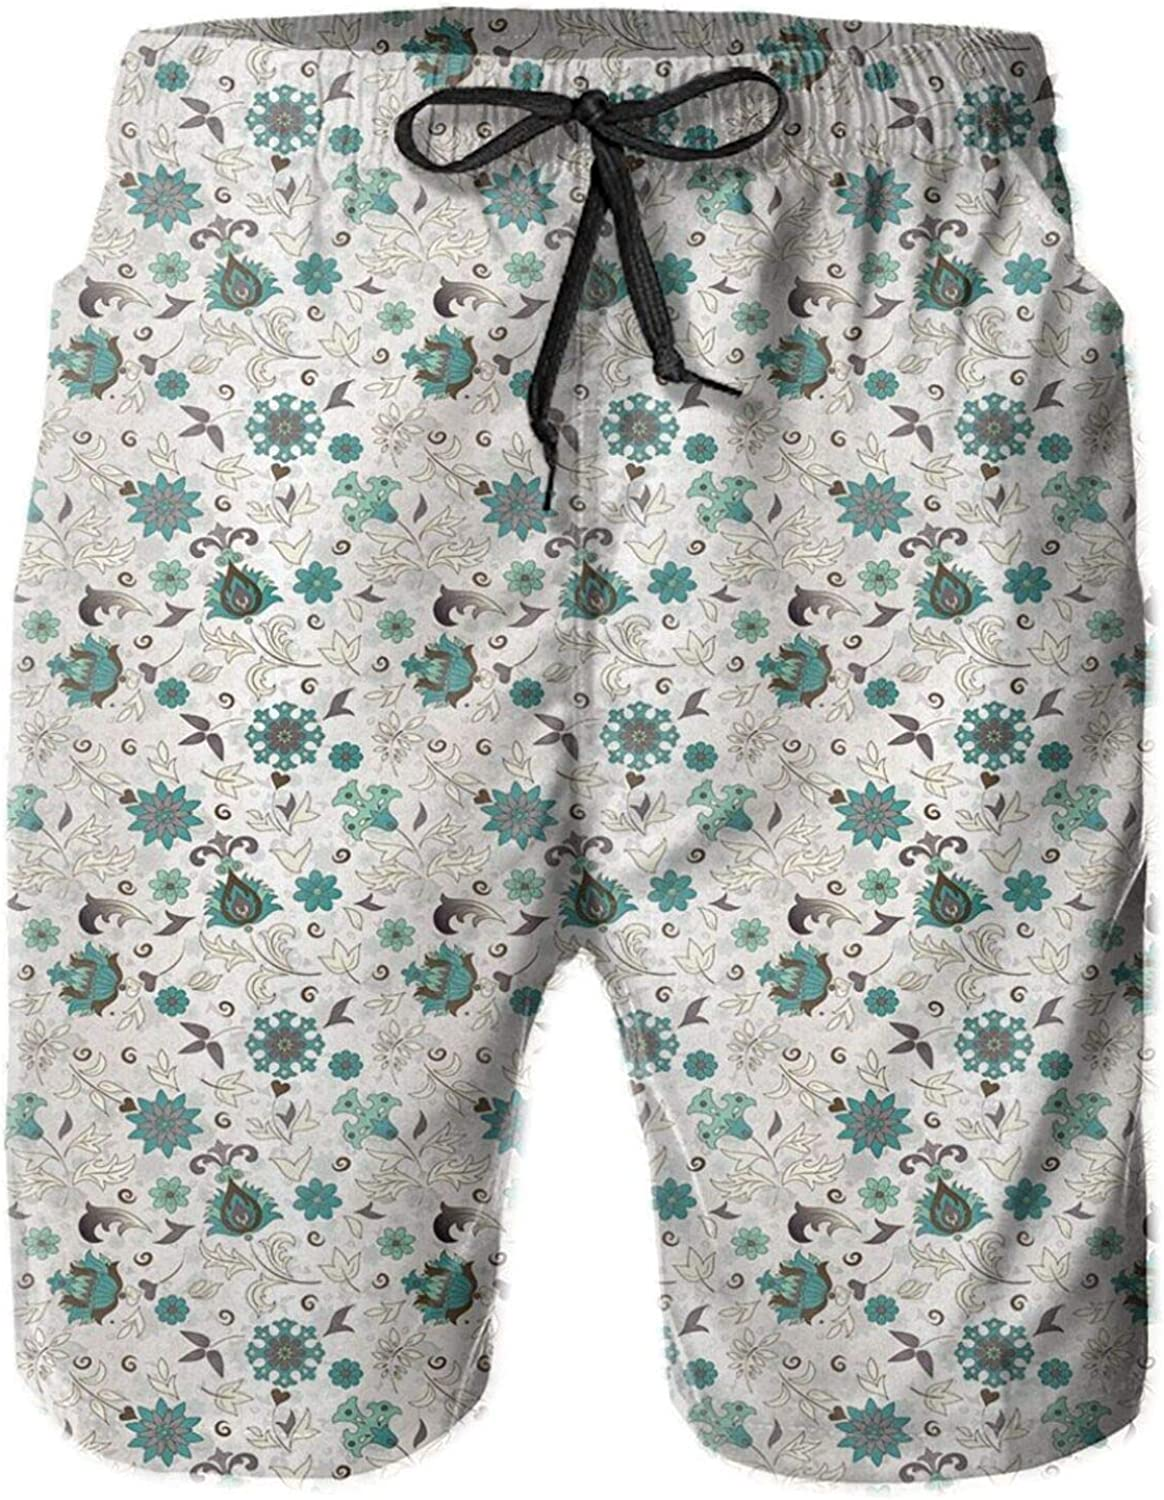 Composition of Flowers with Heart Shaped Leafs Blooming Nature Mens Swim Shorts Casual Workout Short Pants Drawstring Beach Shorts,L